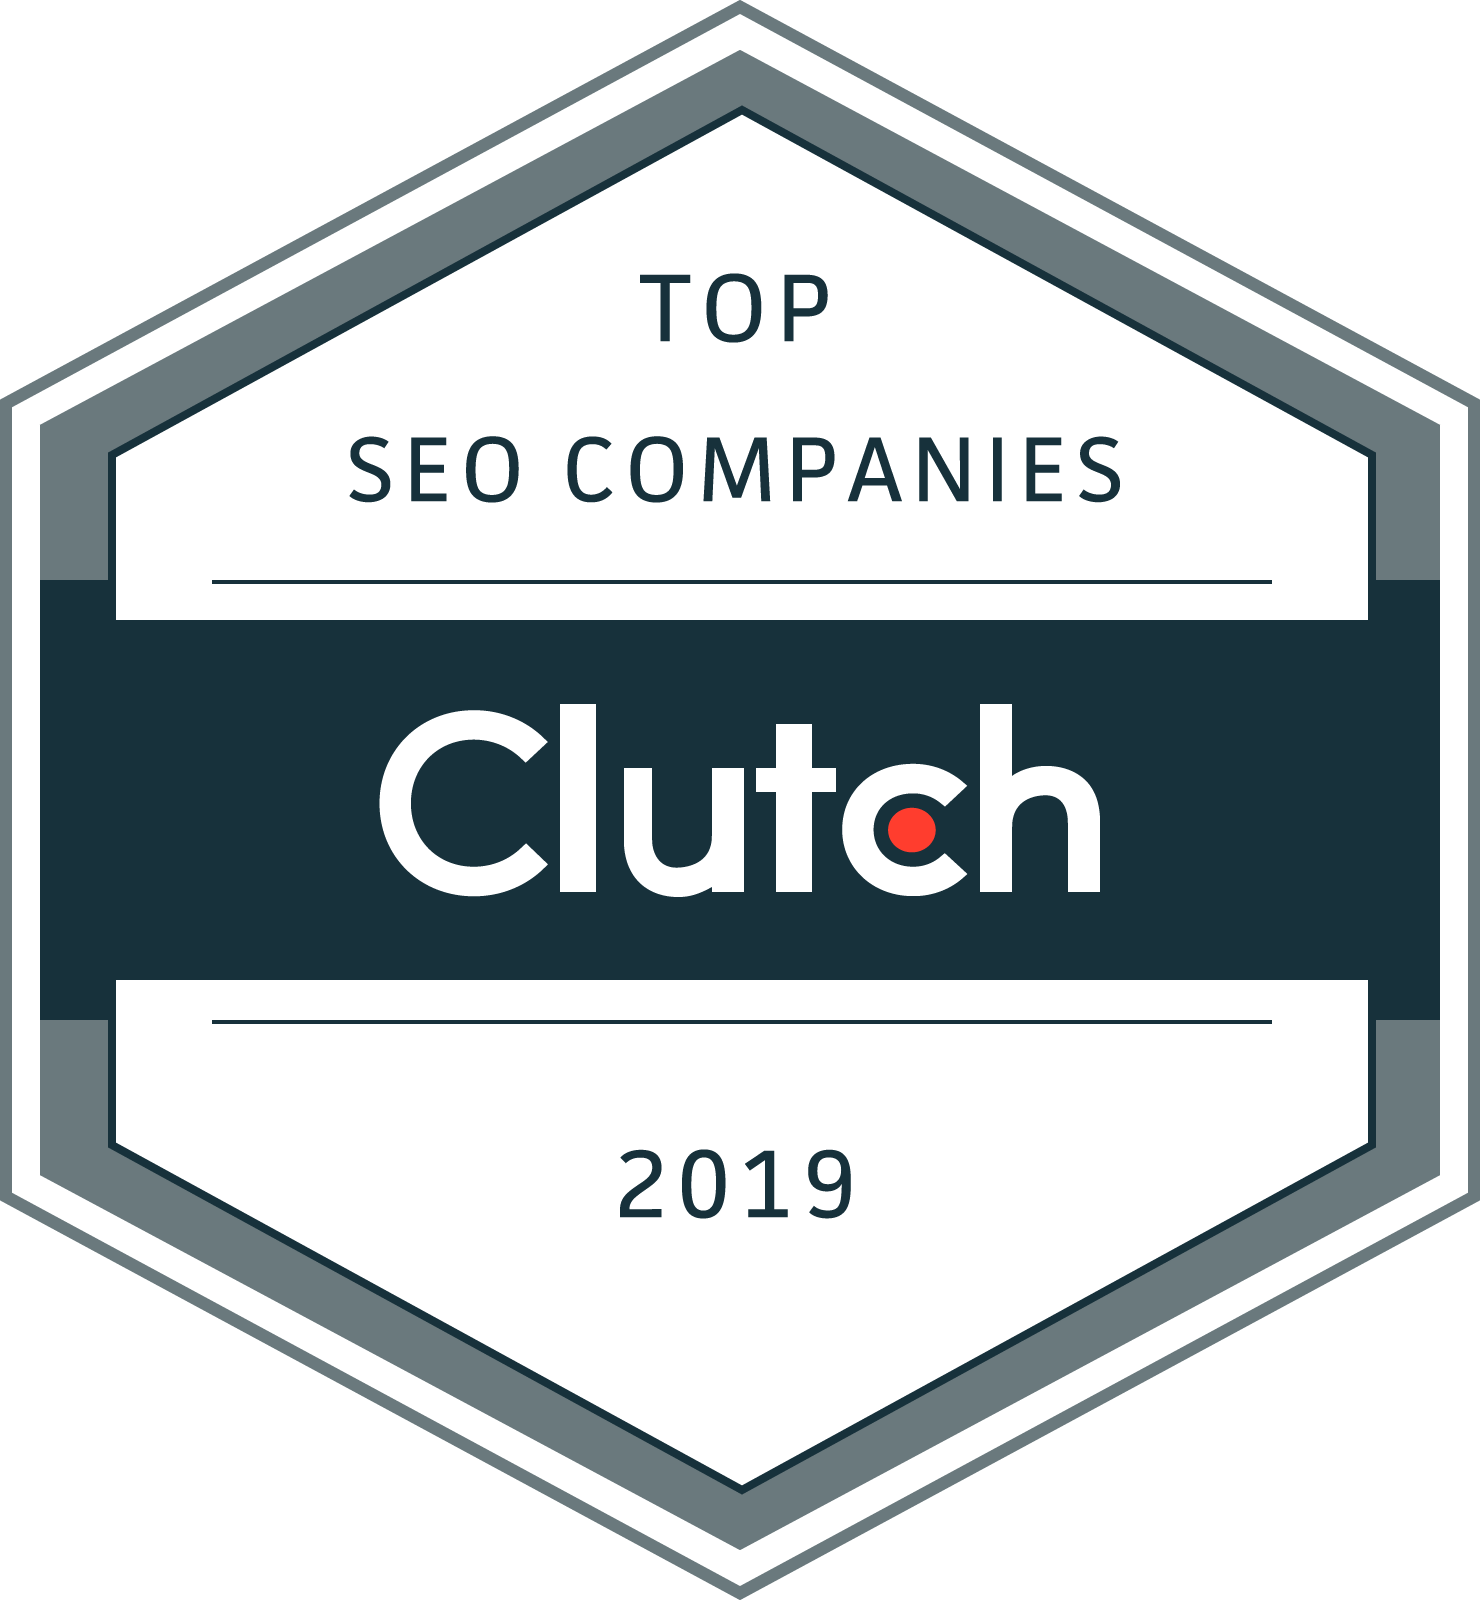 Mimvi SEO is Ranked as a Top 10 New York City SEO Firm by Clutch